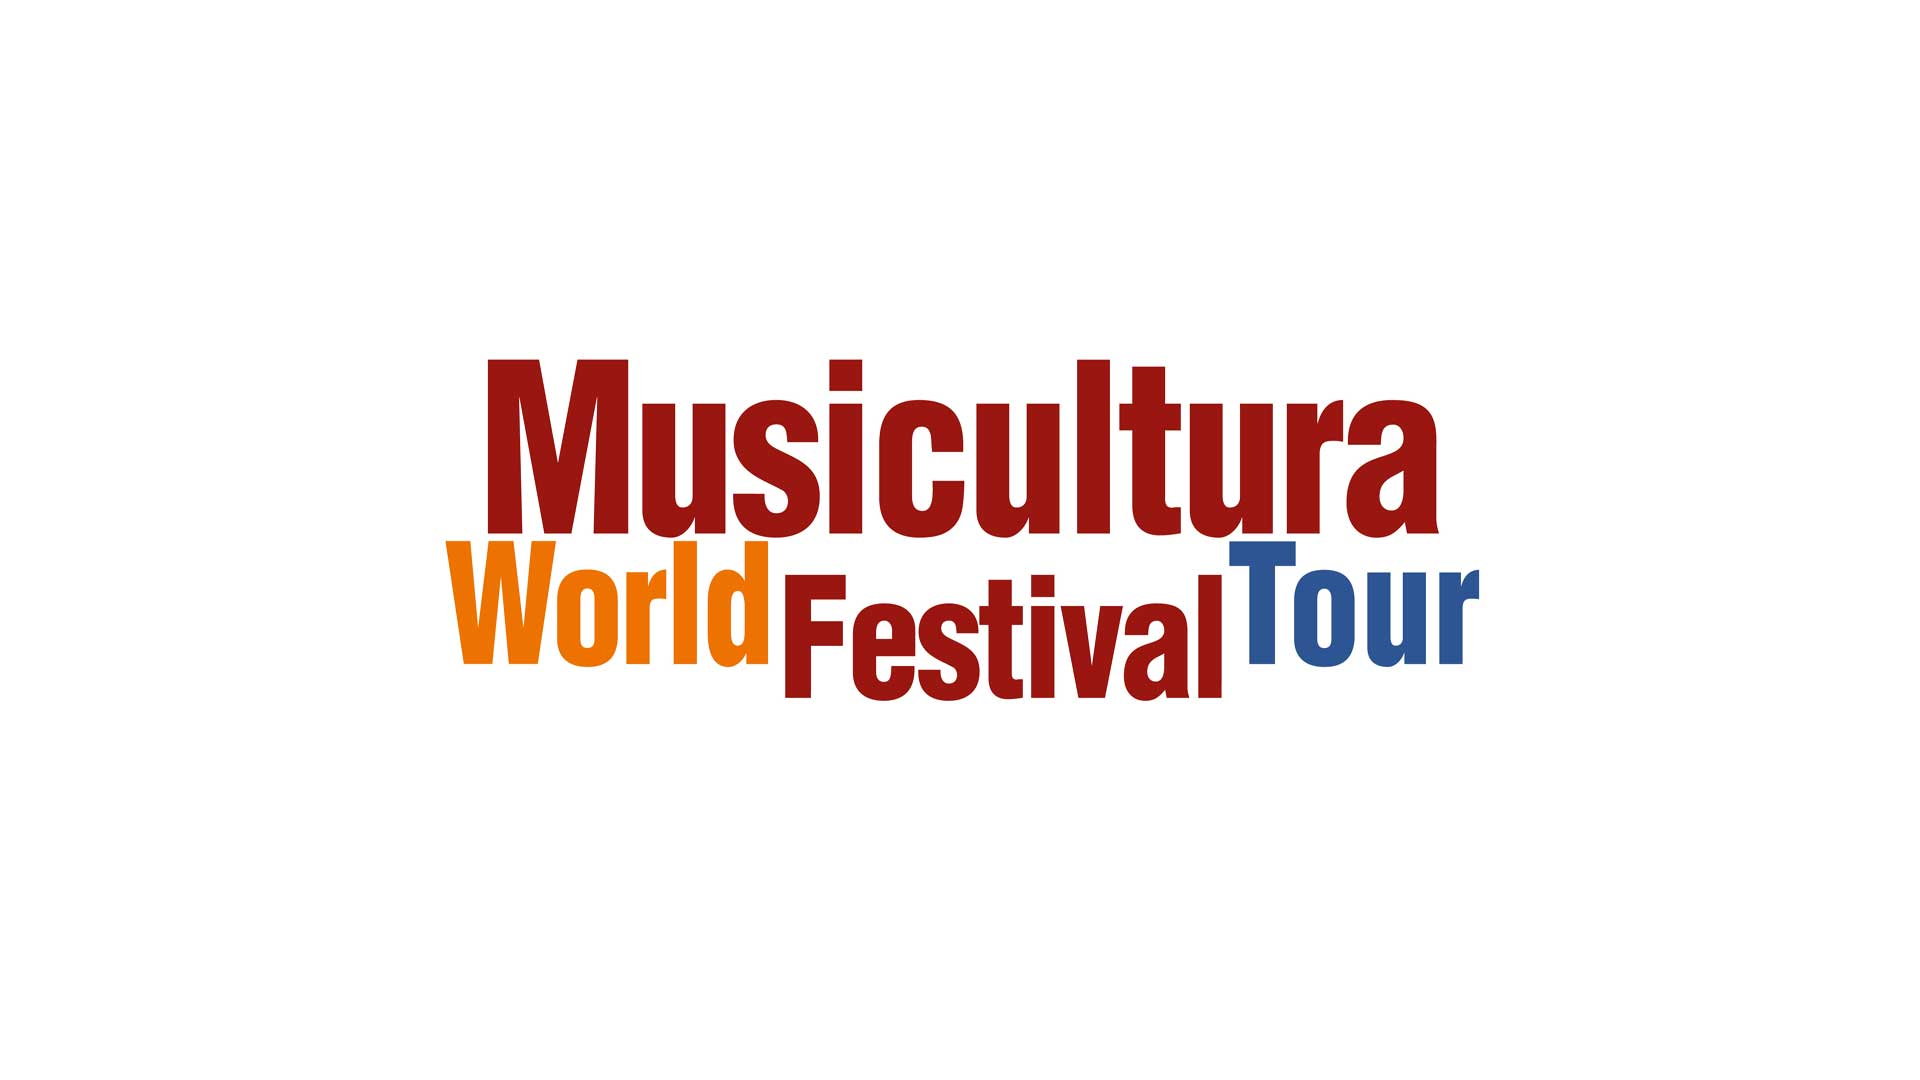 musicultura world festival